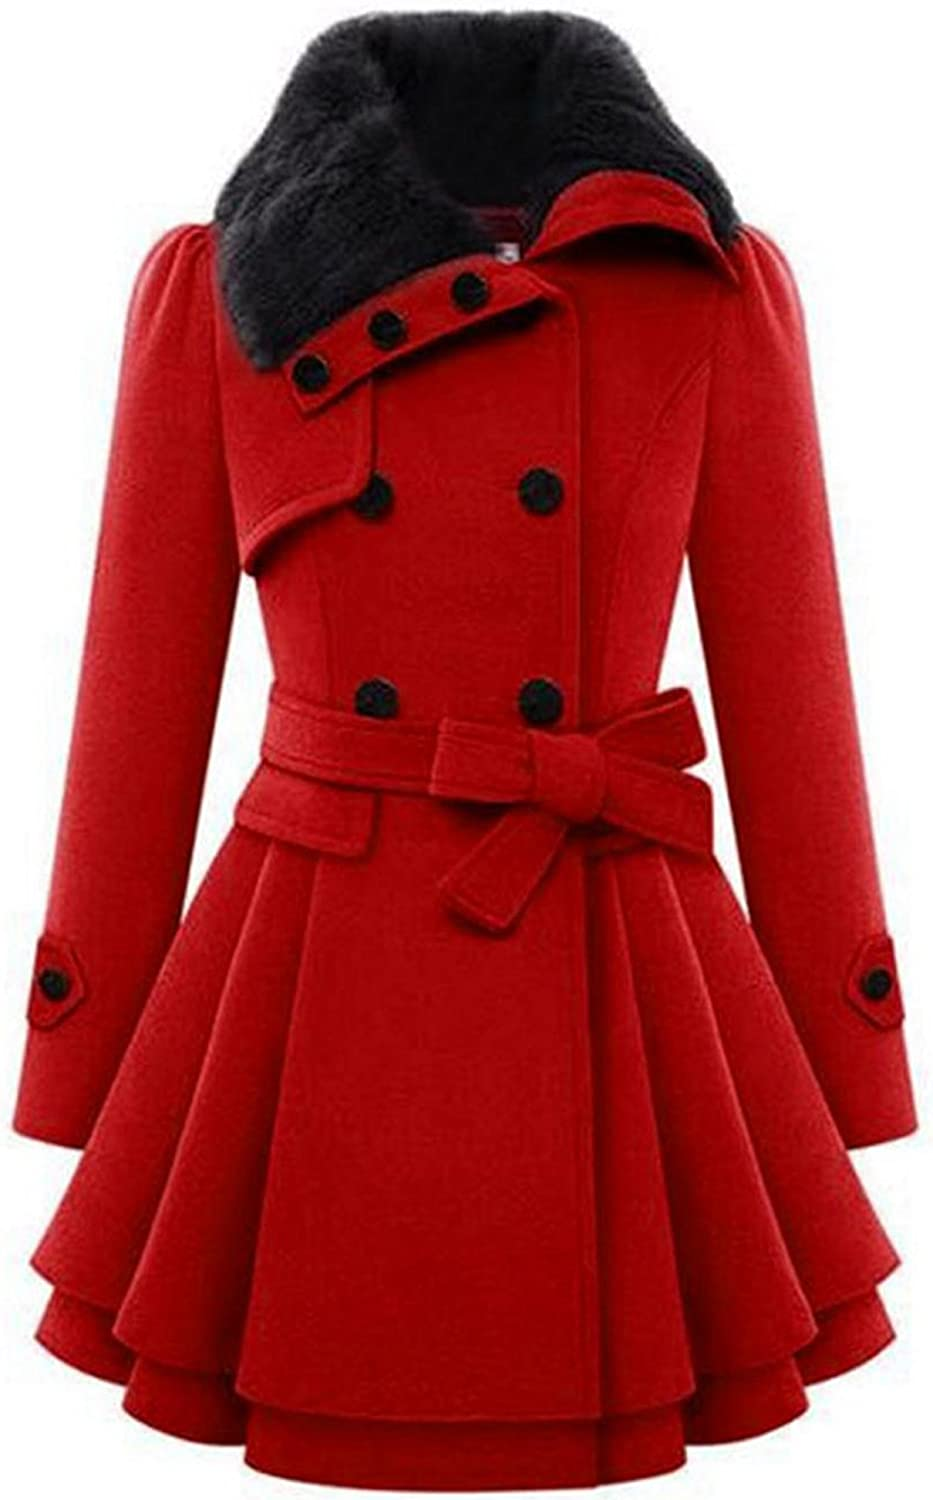 Zeagoo Women's Fashion Faux Fur Lapel Double-Breasted Thick Wool Trench Coat Jacket